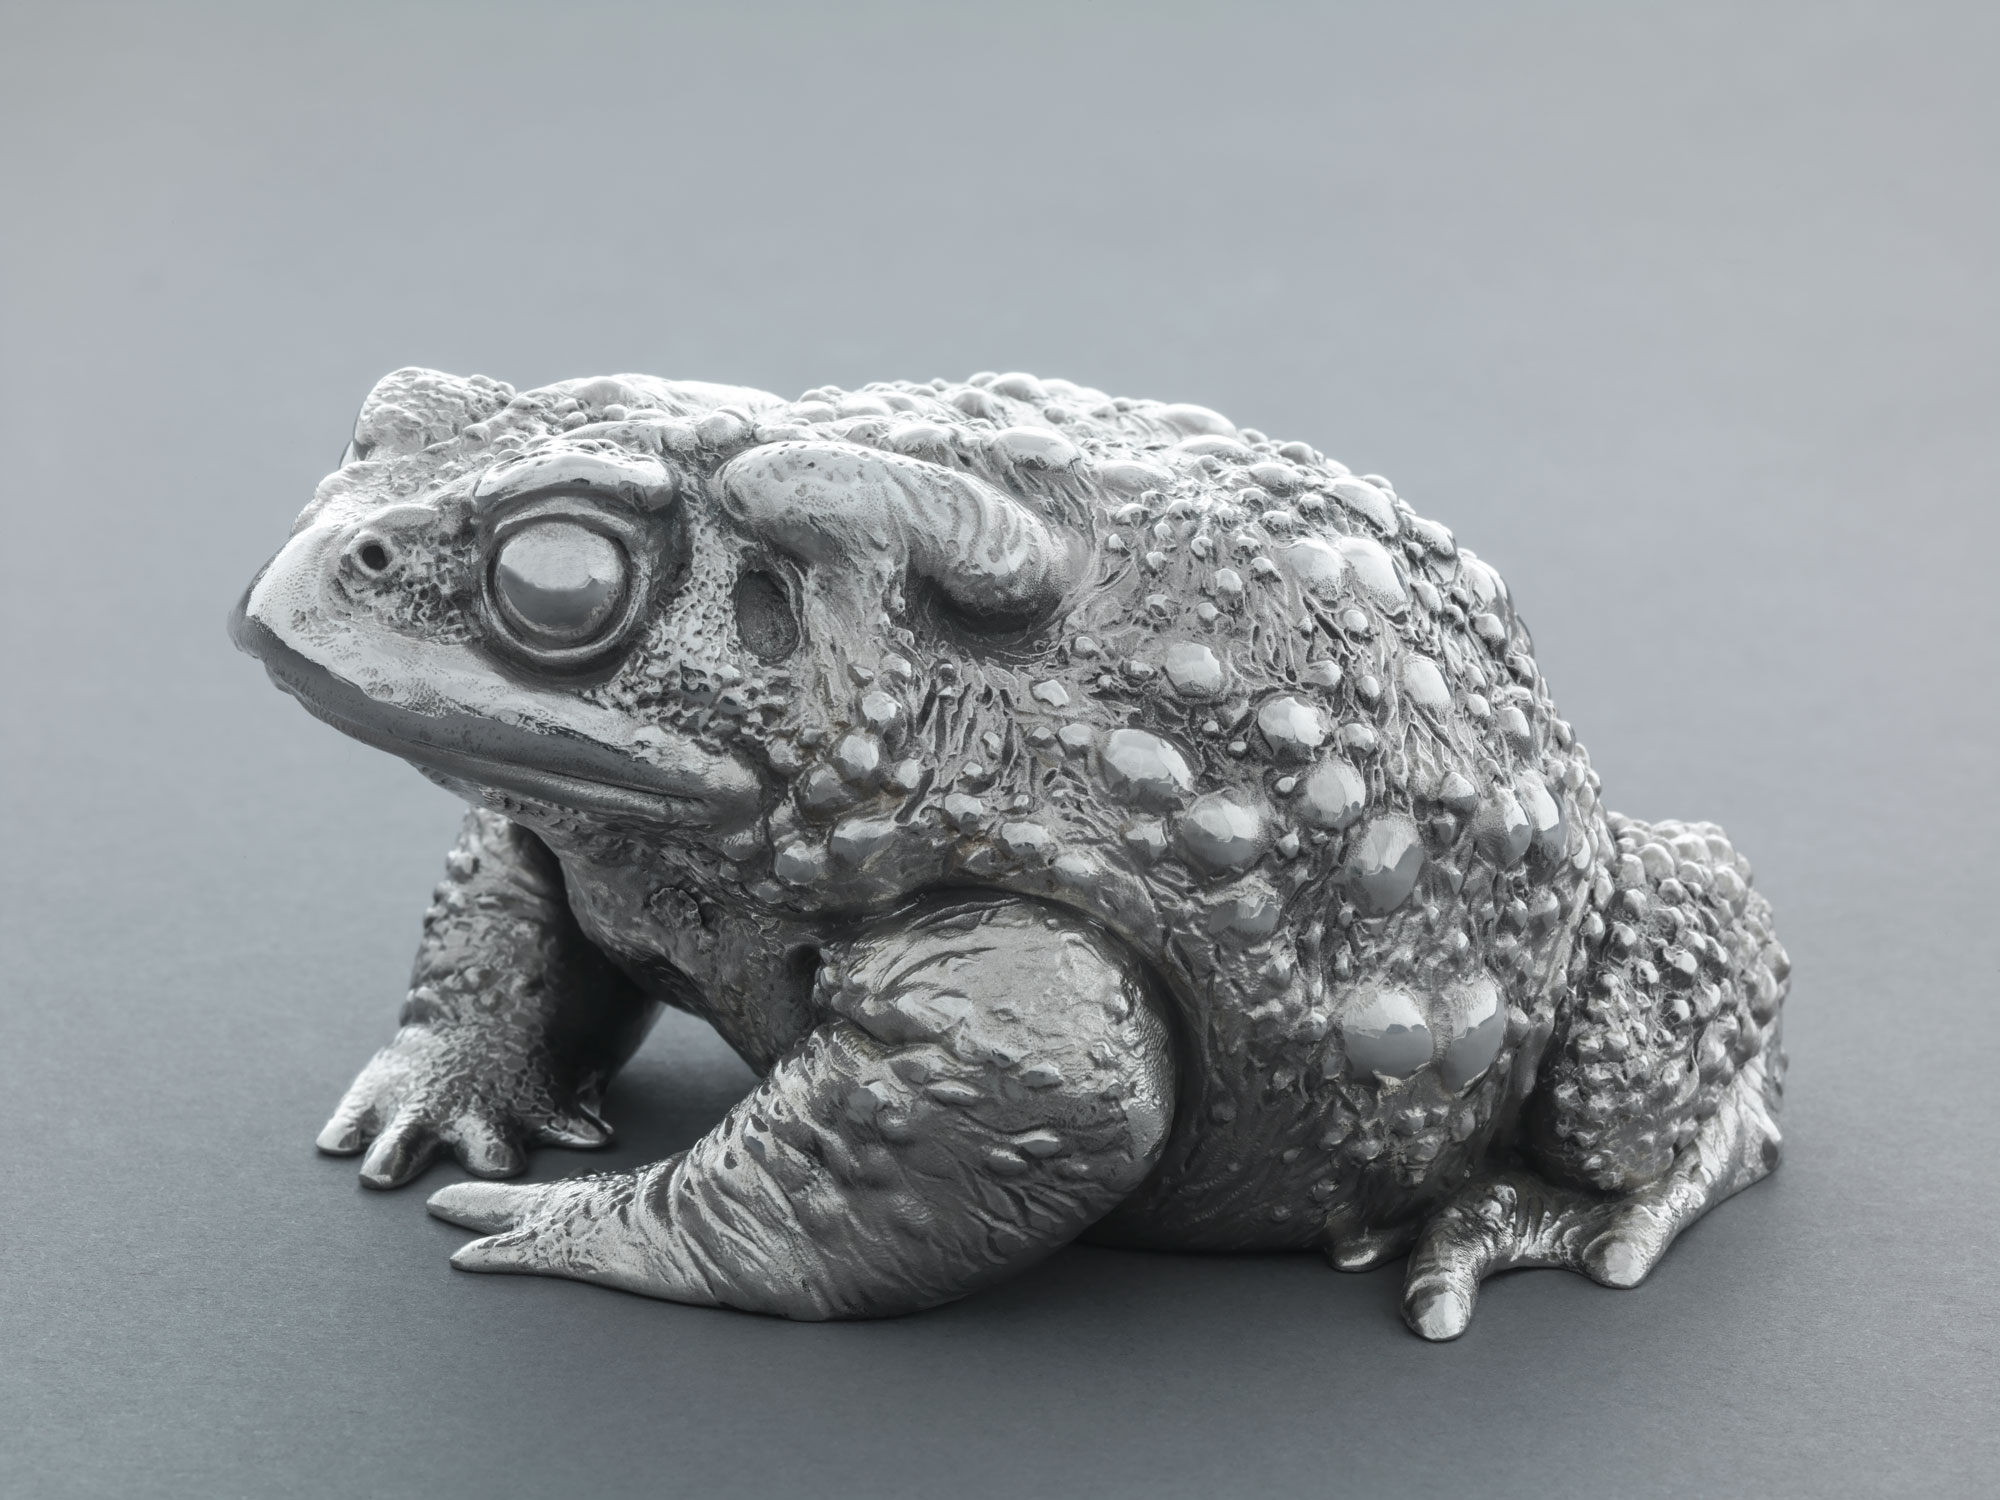 9. Silver Toad II by Nick Bibby, Edition of 12, 3 x 6 x 5 inches (8 x 15 x 13cm).jpg